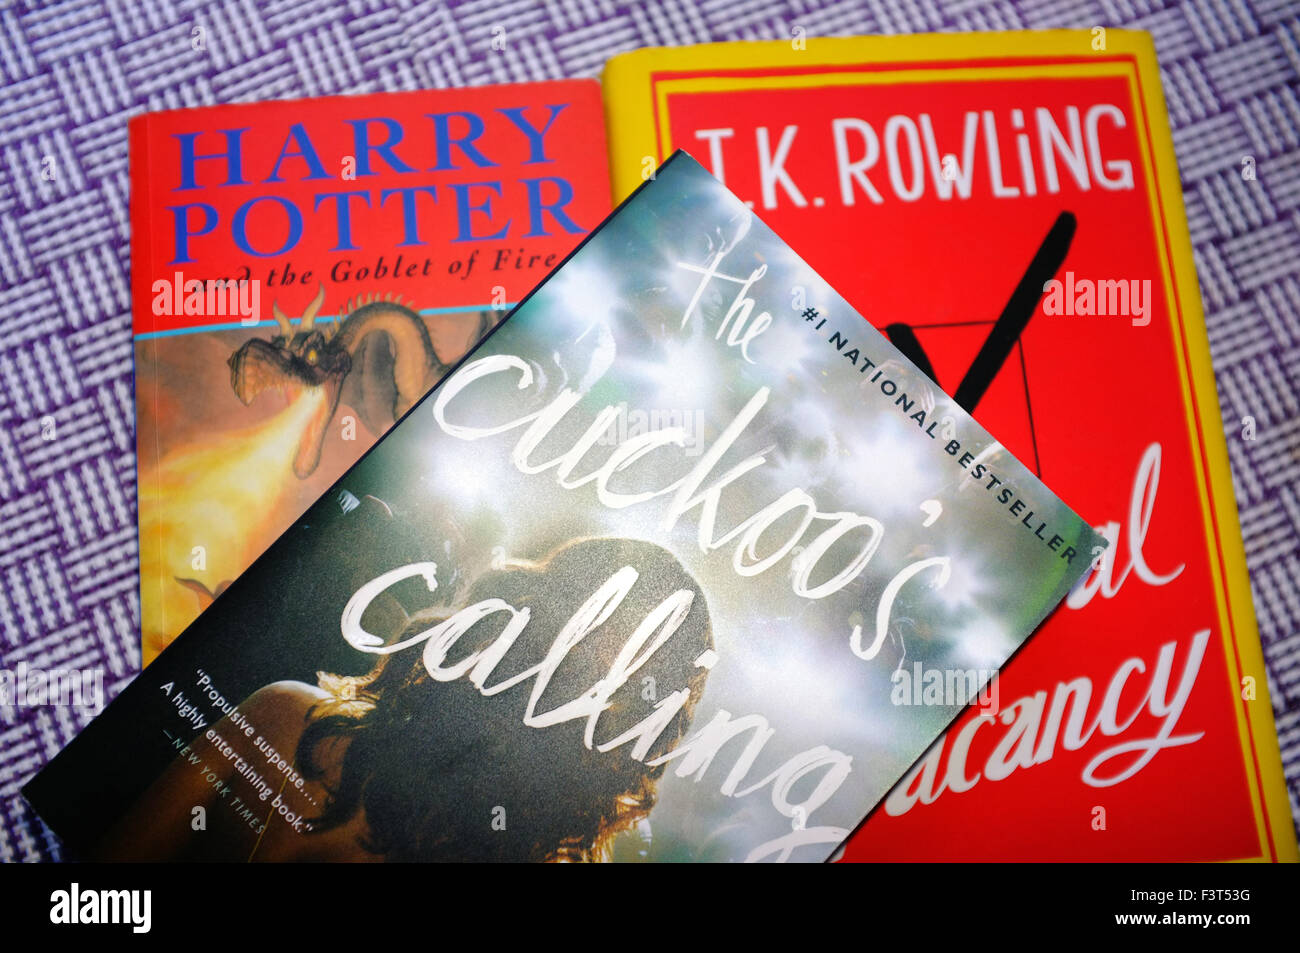 The J.K. Rowling books Harry Potter, The Casual Vacancy and The Cuckoo's Calling photographed against a purple - Stock Image